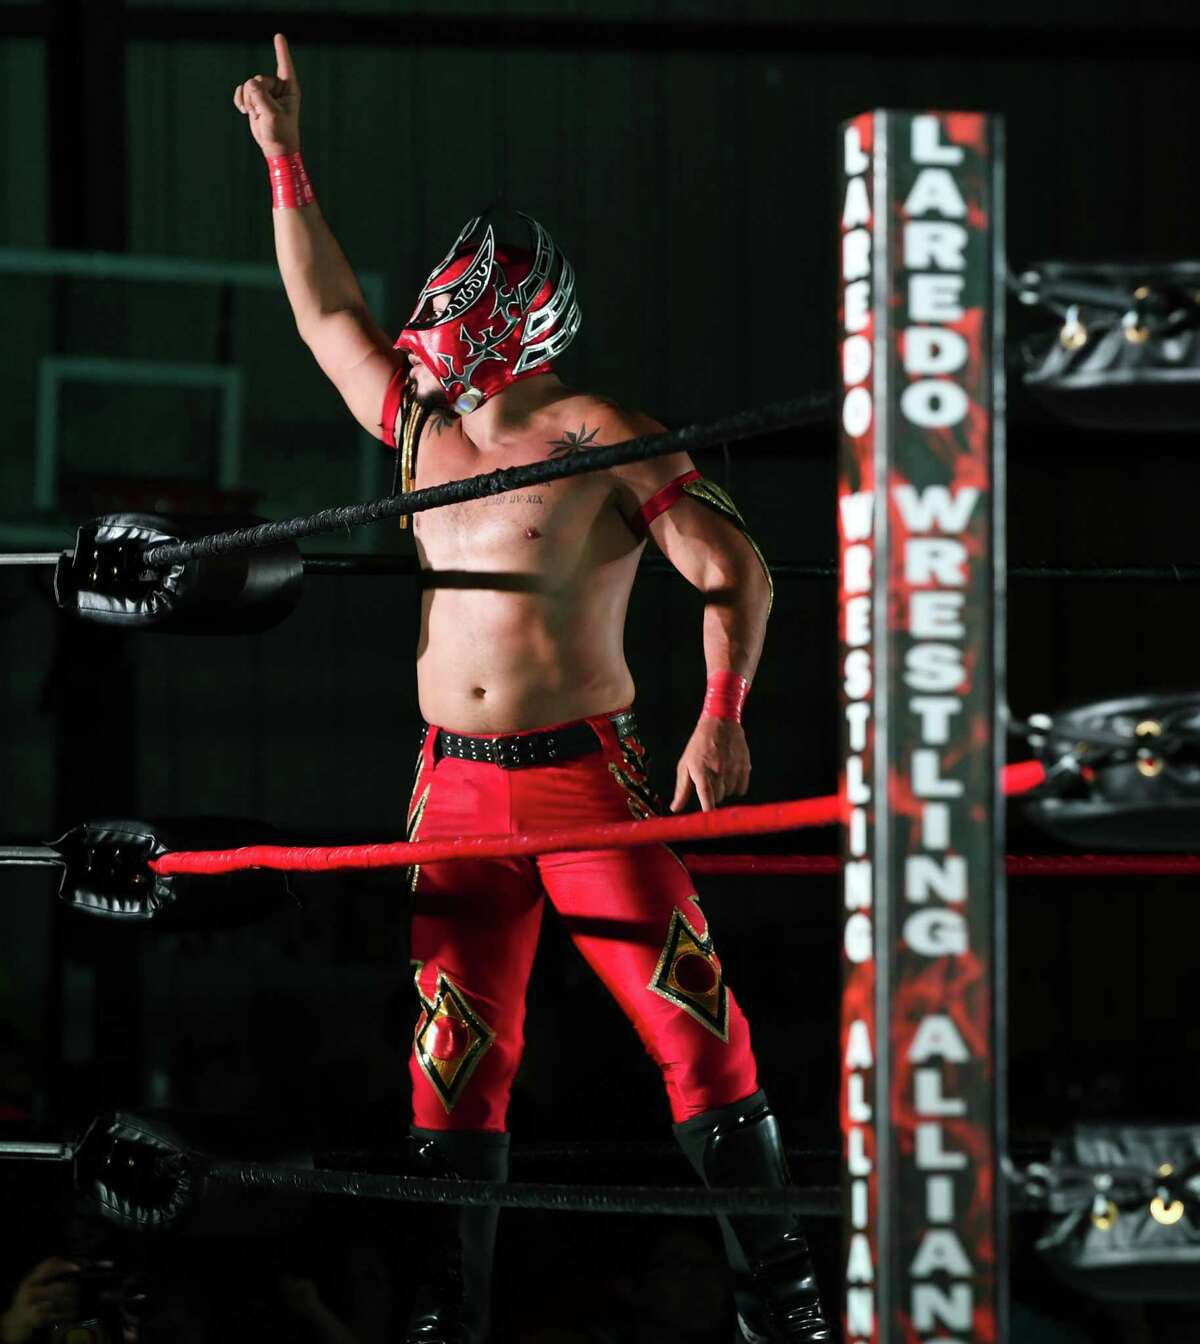 Laredo Kid is the current AAA World Cruiserweight champion and one-third of the AAA World Trios champions along with El Hijo del Vikingo and Myzteziz Jr.